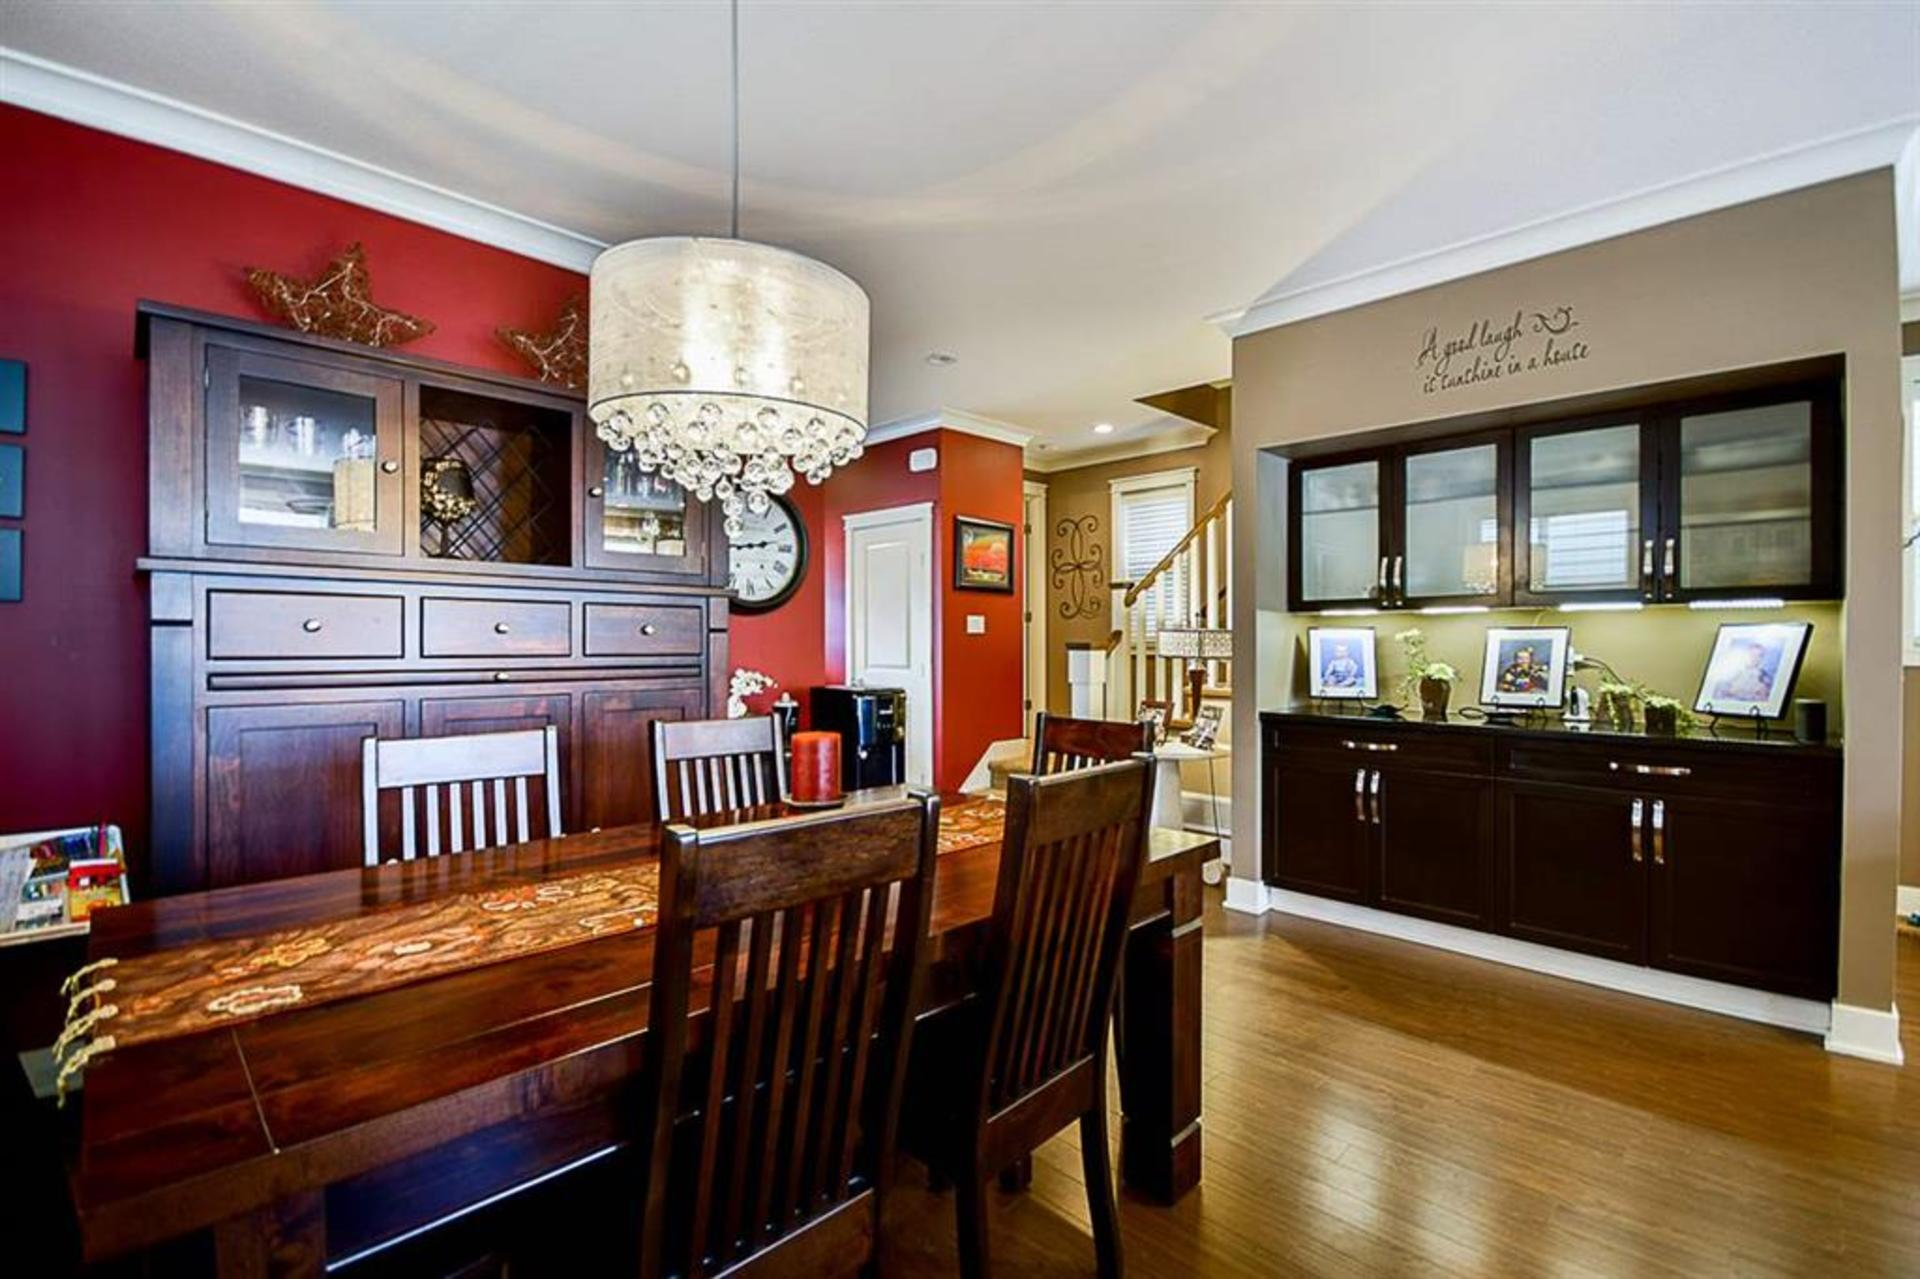 262171954-5 at 131 172a Street, Pacific Douglas, South Surrey White Rock